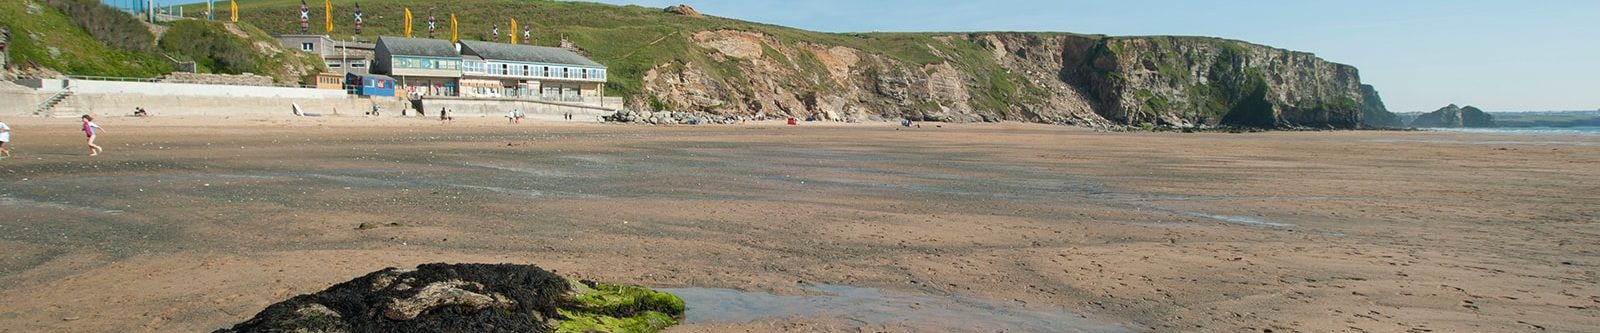 view of Watergate Bay sand